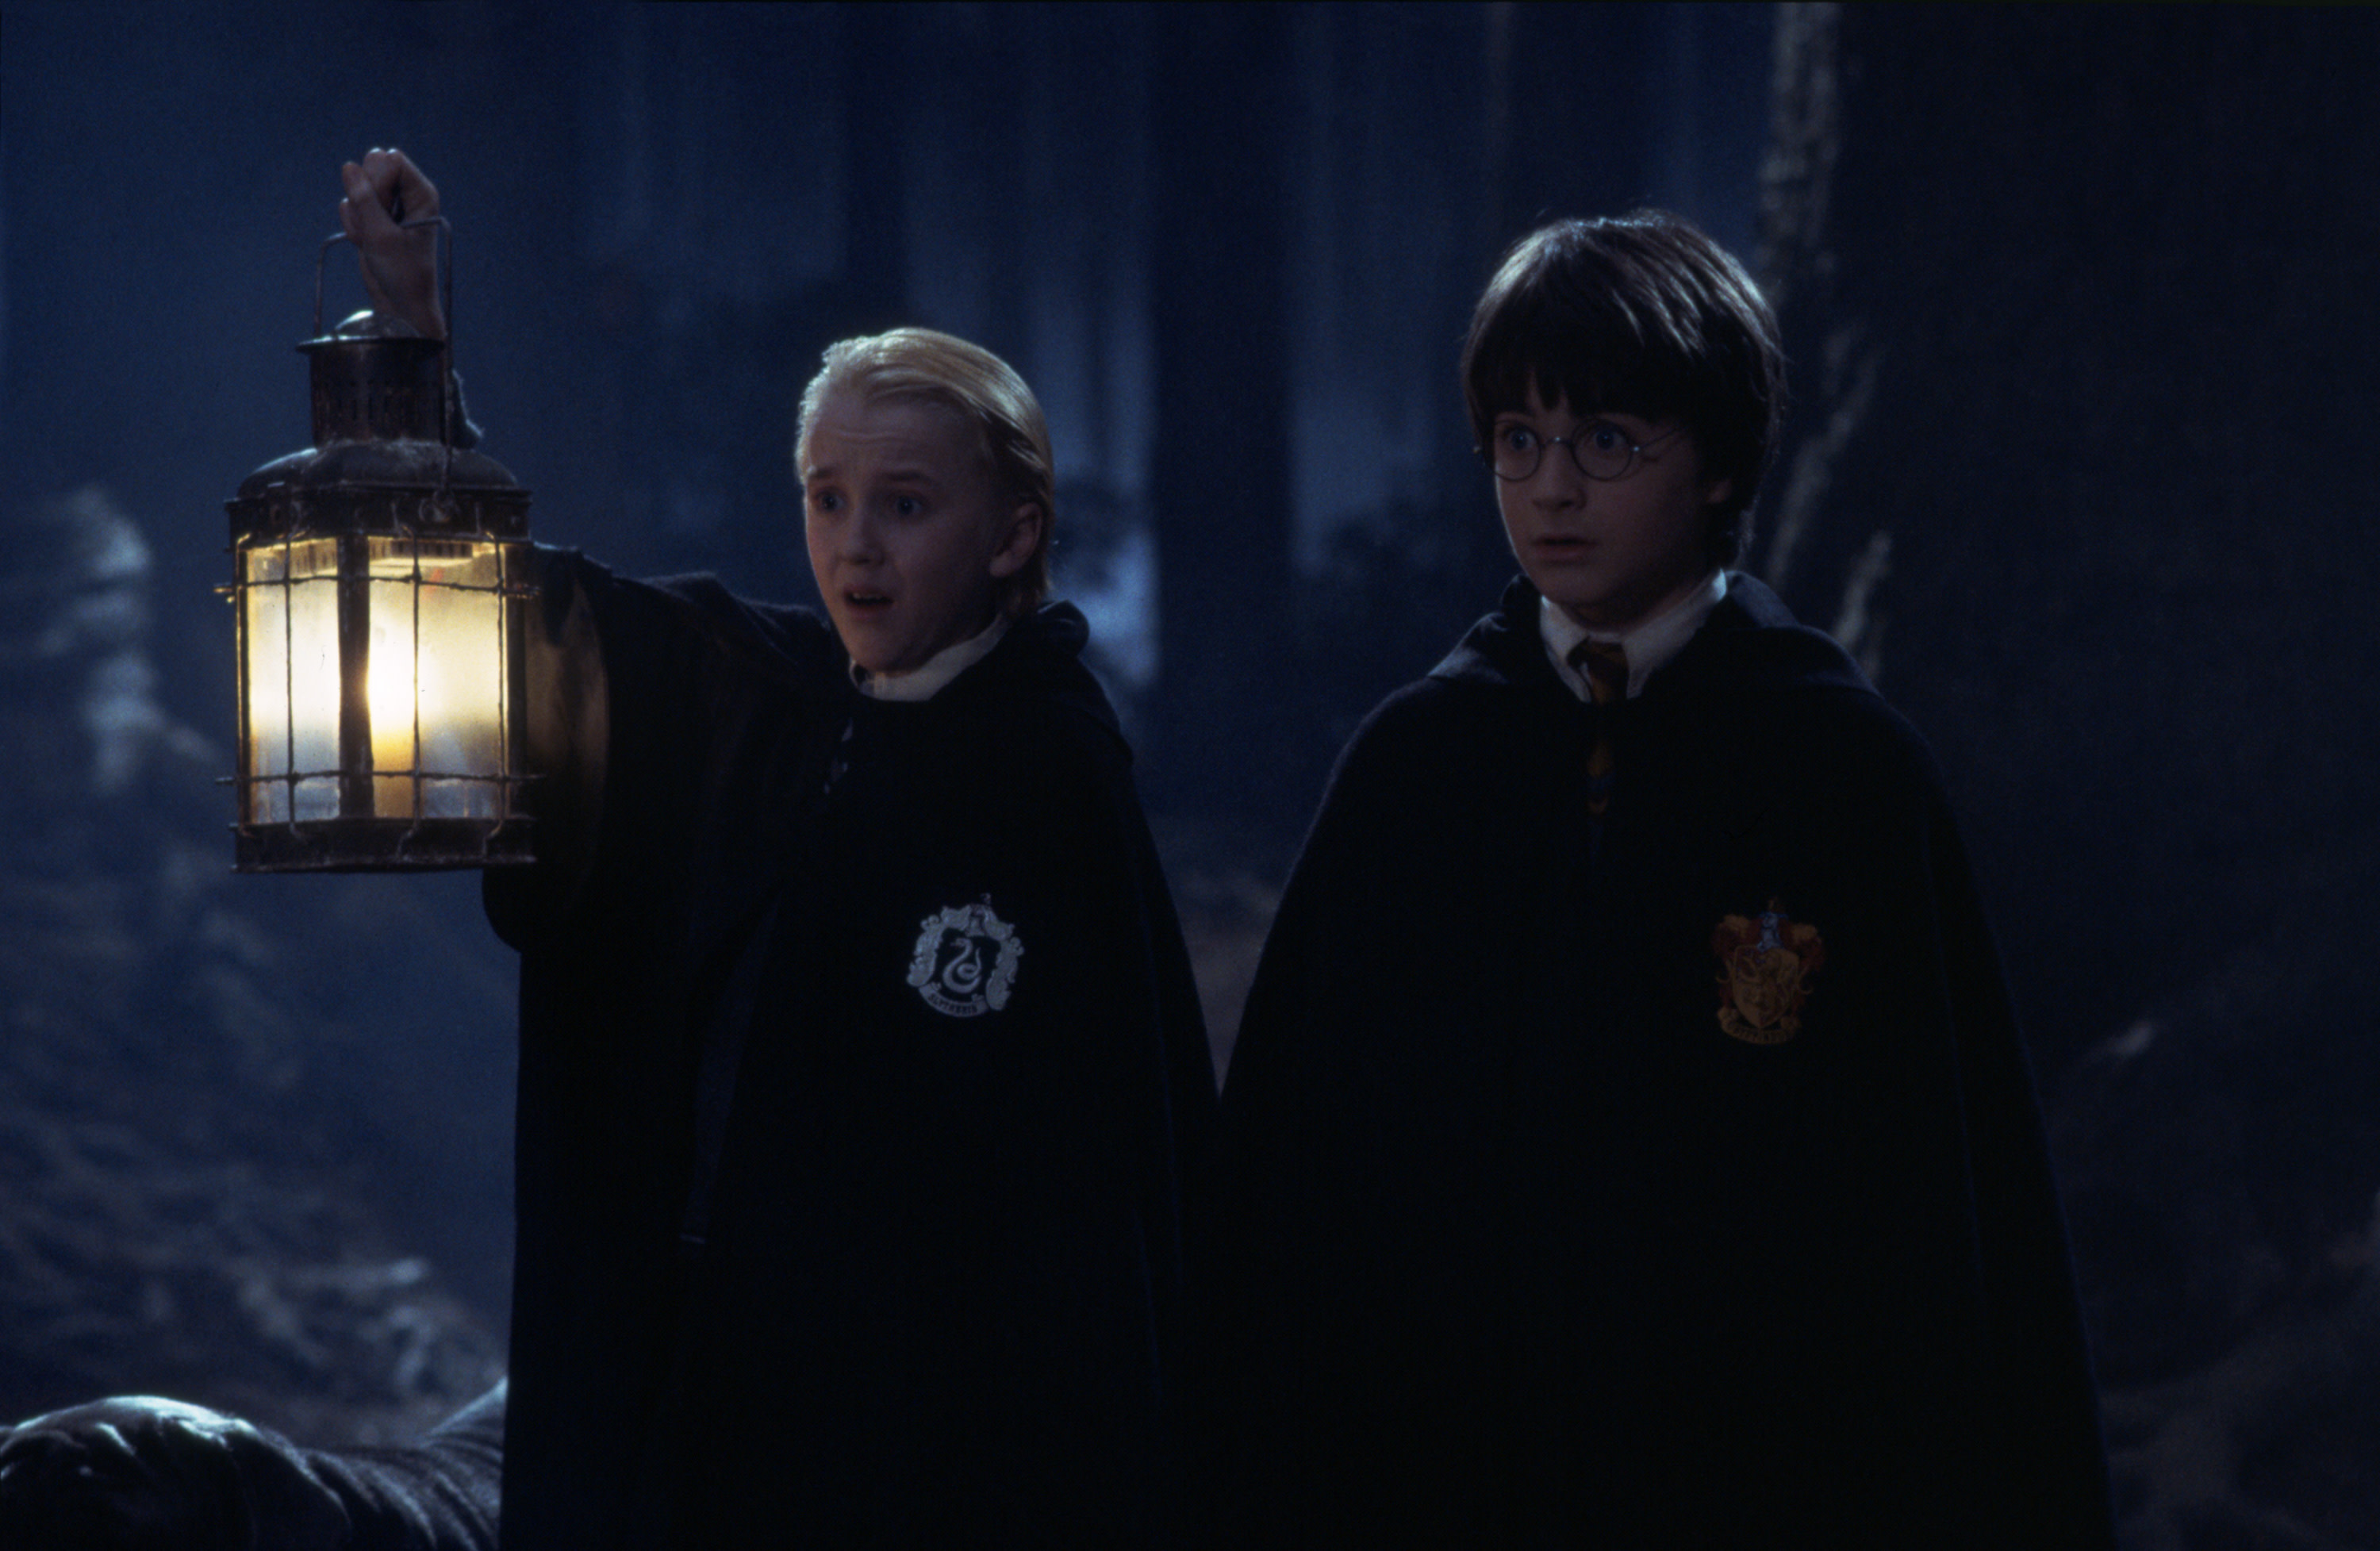 WB-philosophers-stone-draco-harry-forbidden-forest